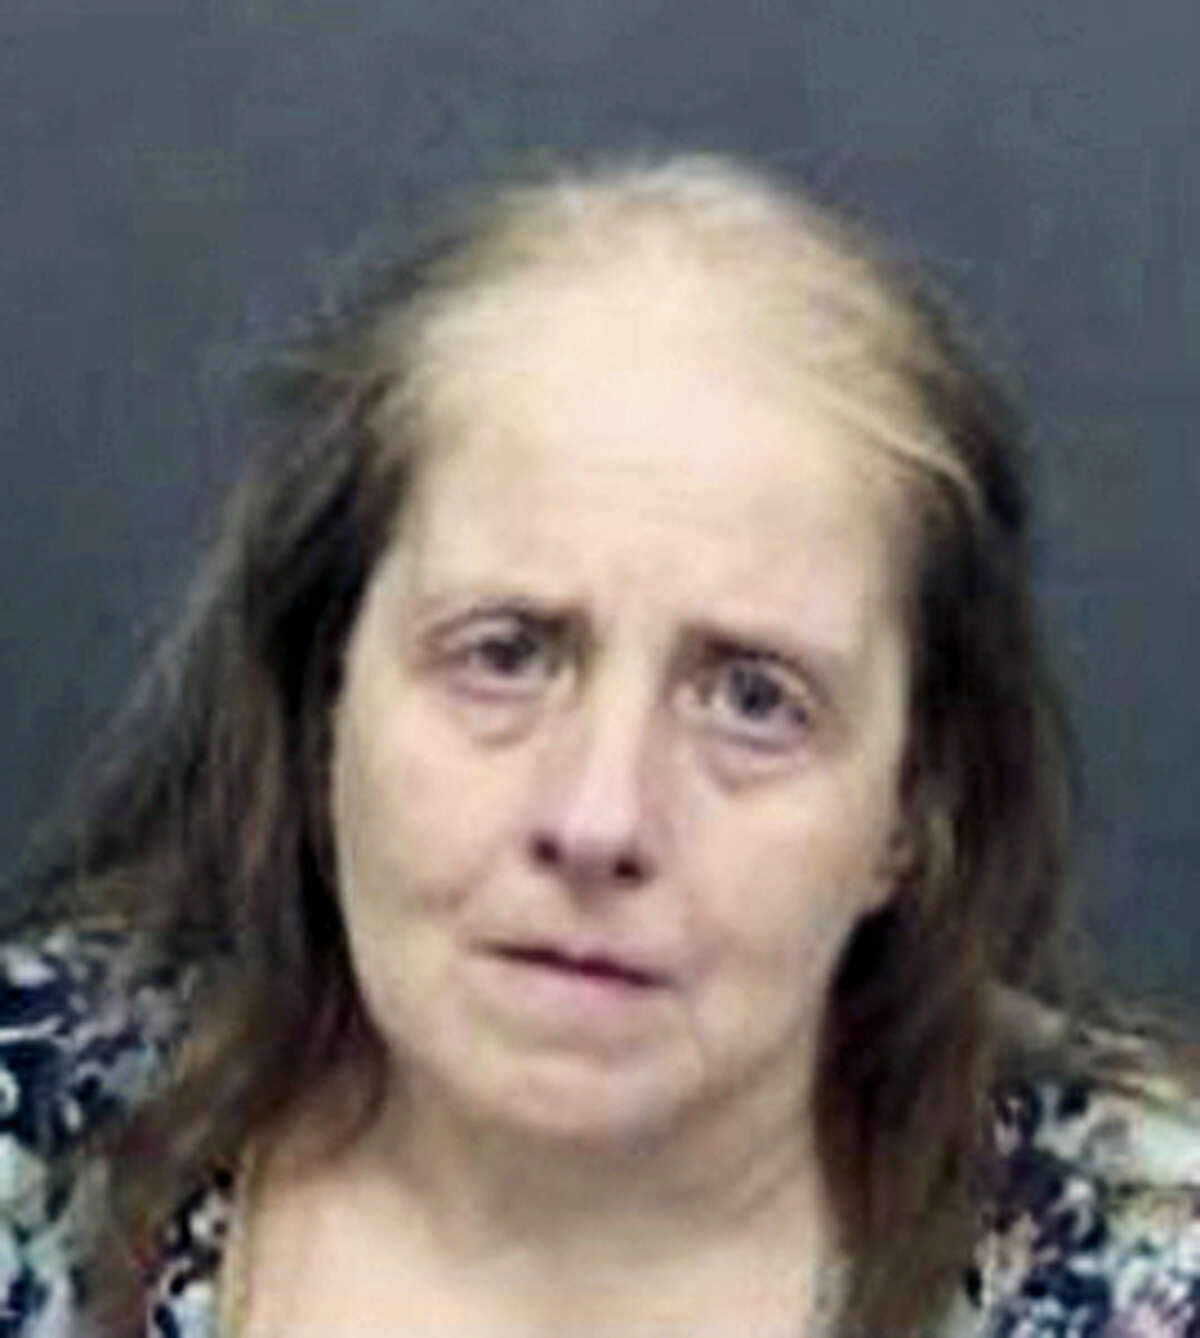 An undated photo provided by the Hillsborough County Sheriff's Office shows Lucy Richards, 57, of Brandon, Fla. The public defender for Richards said in court papers filed Wednesday, May 24, 2017, she will plead guilty to threatening Lenny Pozner, the father of Noah Pozner, who died in the Sandy Hook school shooting in Newtown, Connecticut.